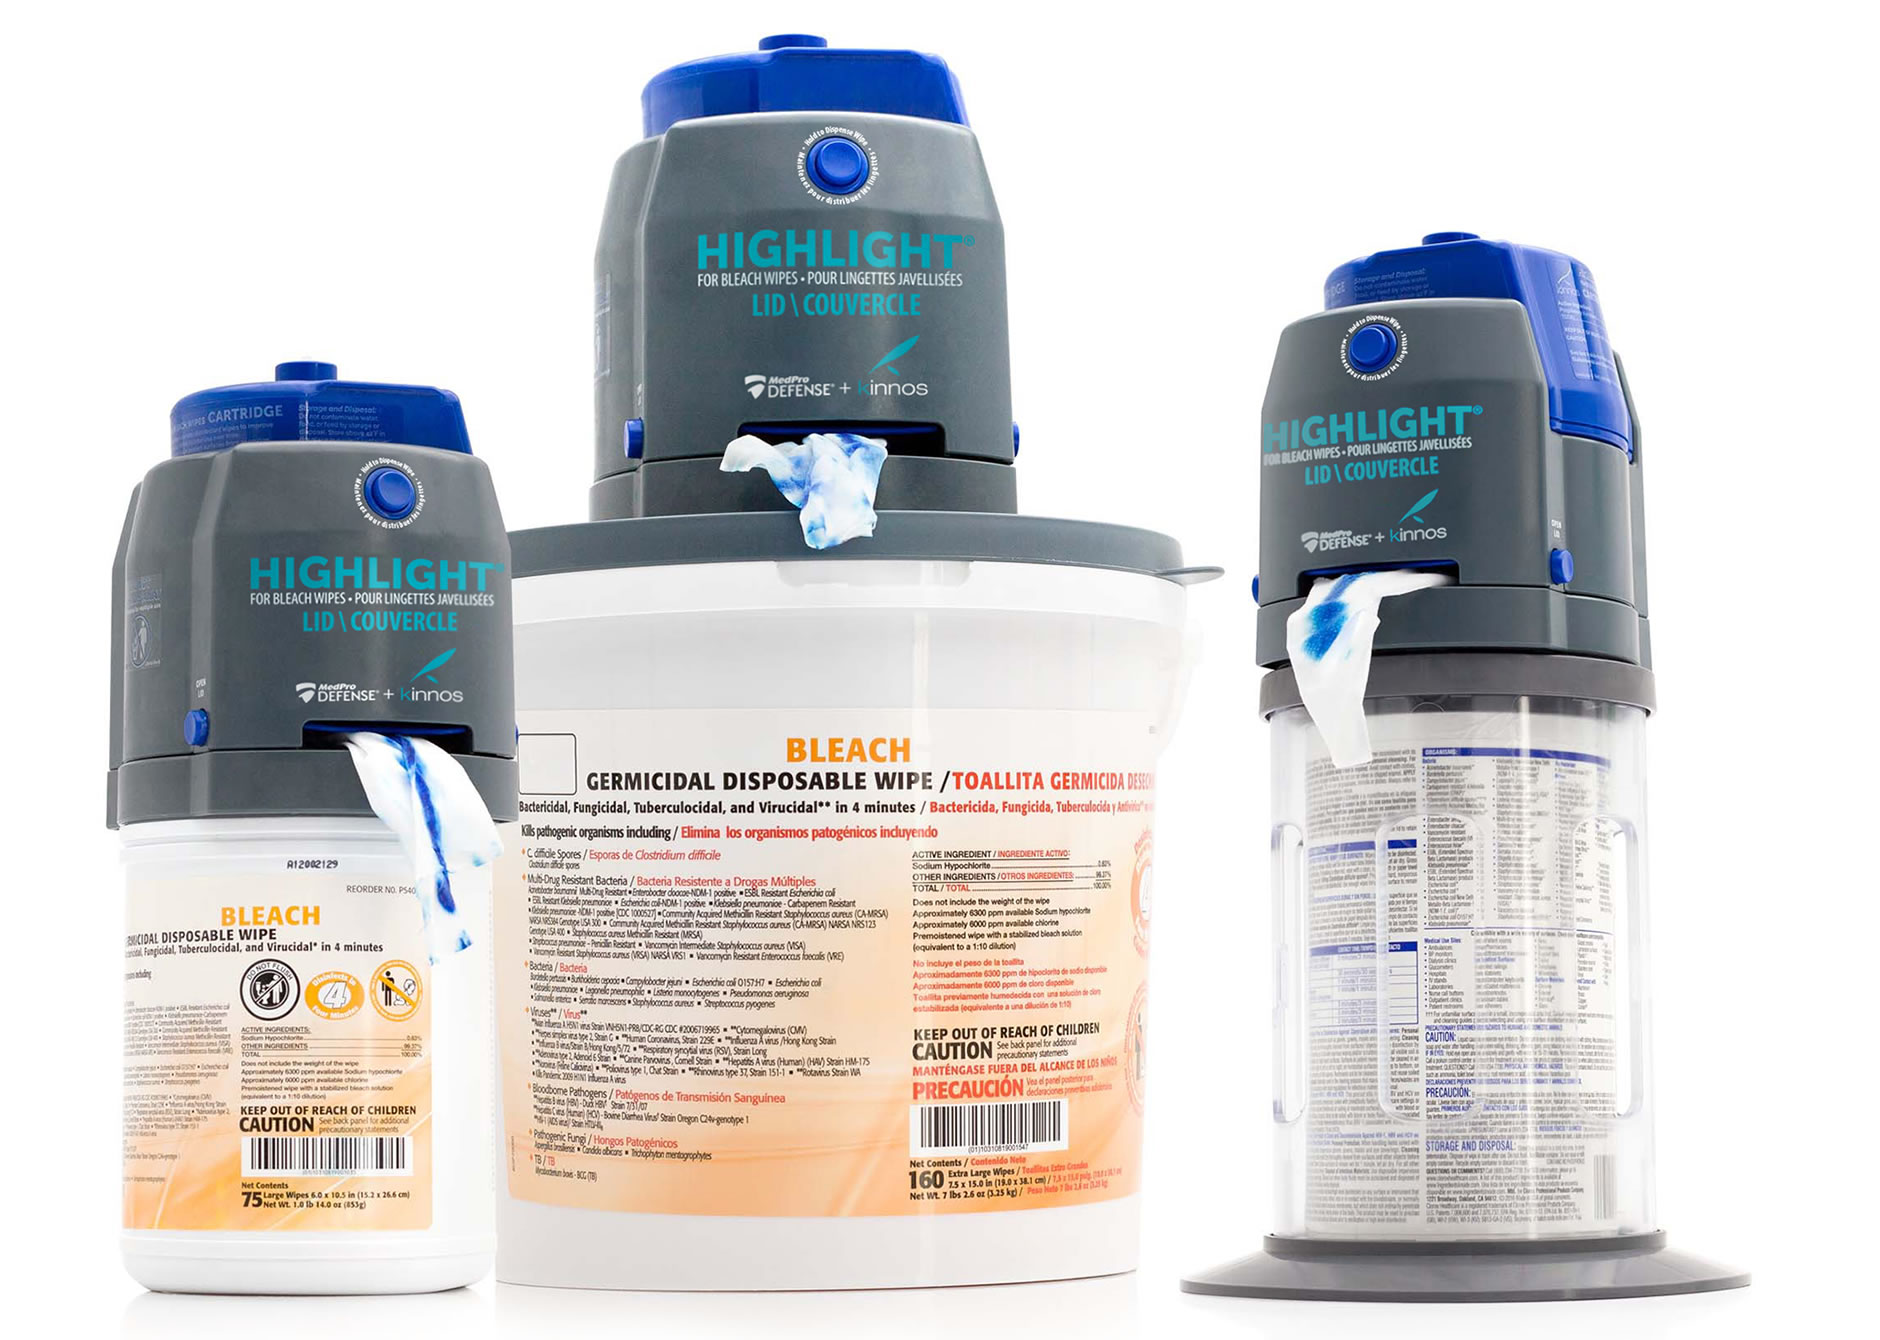 Highlight For Bleach Wipes - Training Video